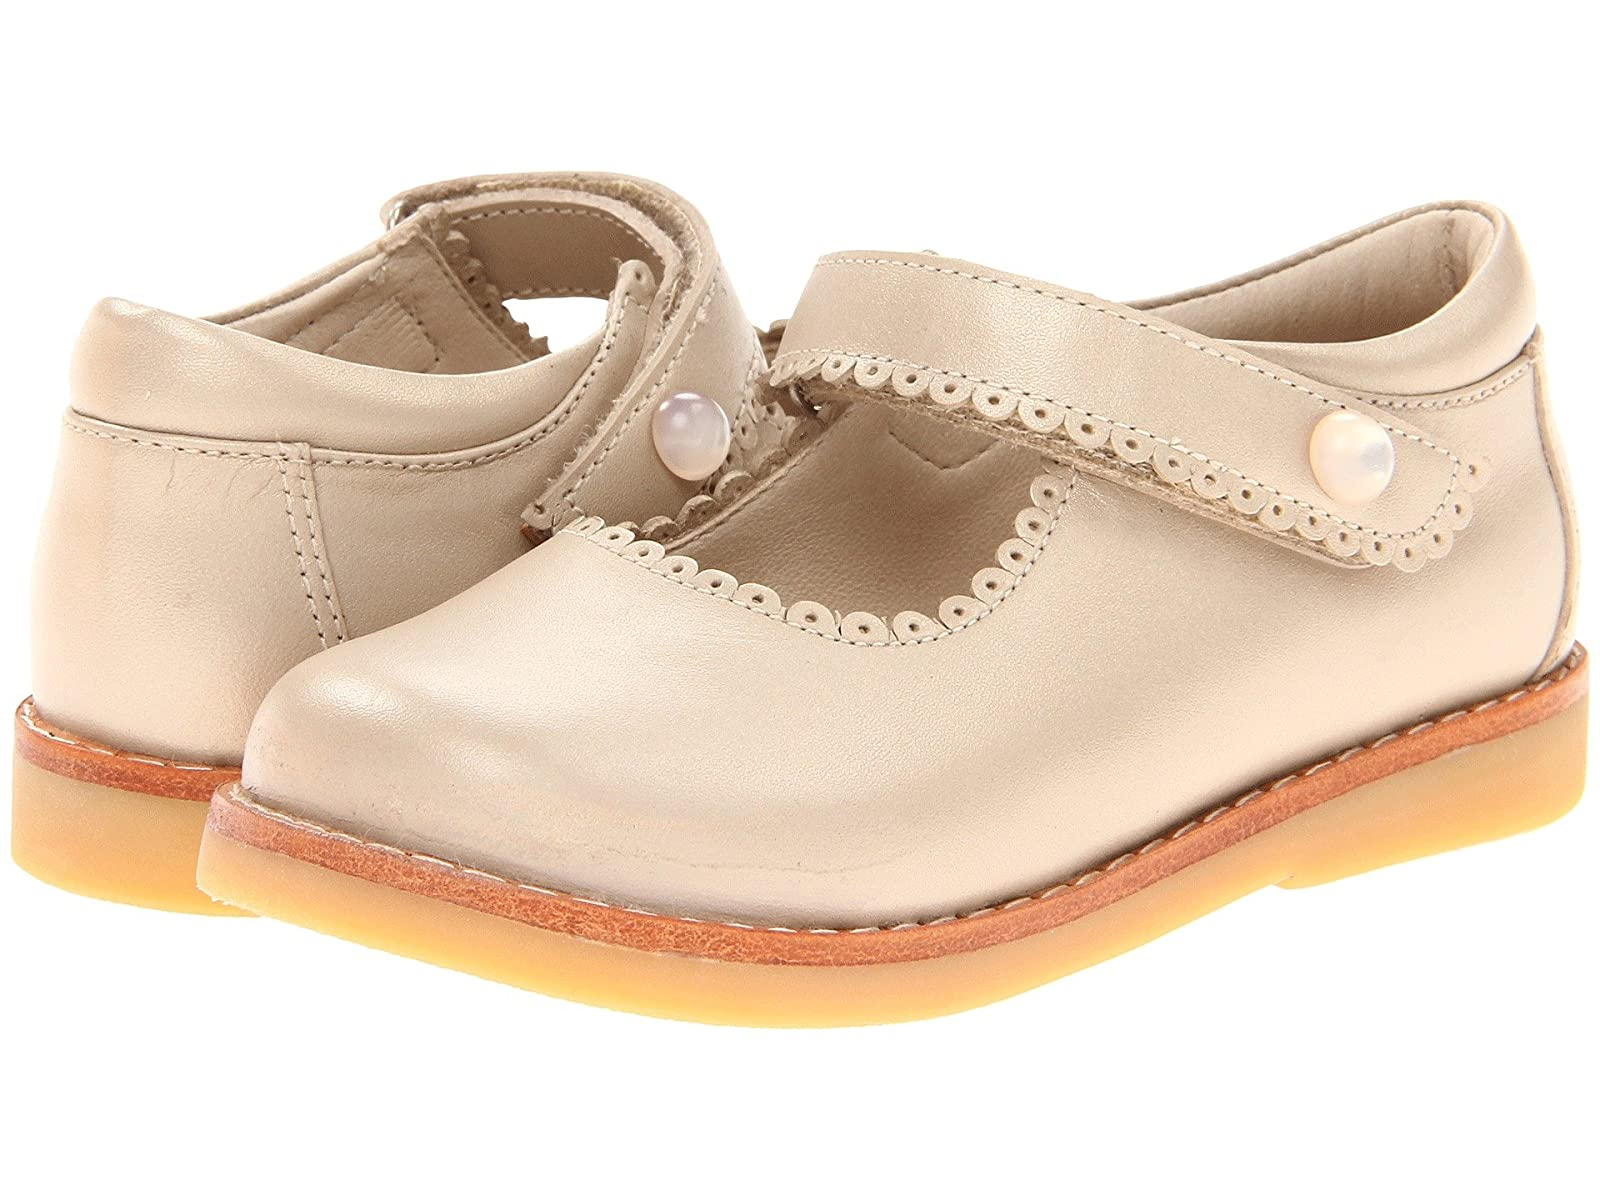 Elephantito Mary Jane (Toddler/Little Kid)Atmospheric grades have affordable shoes